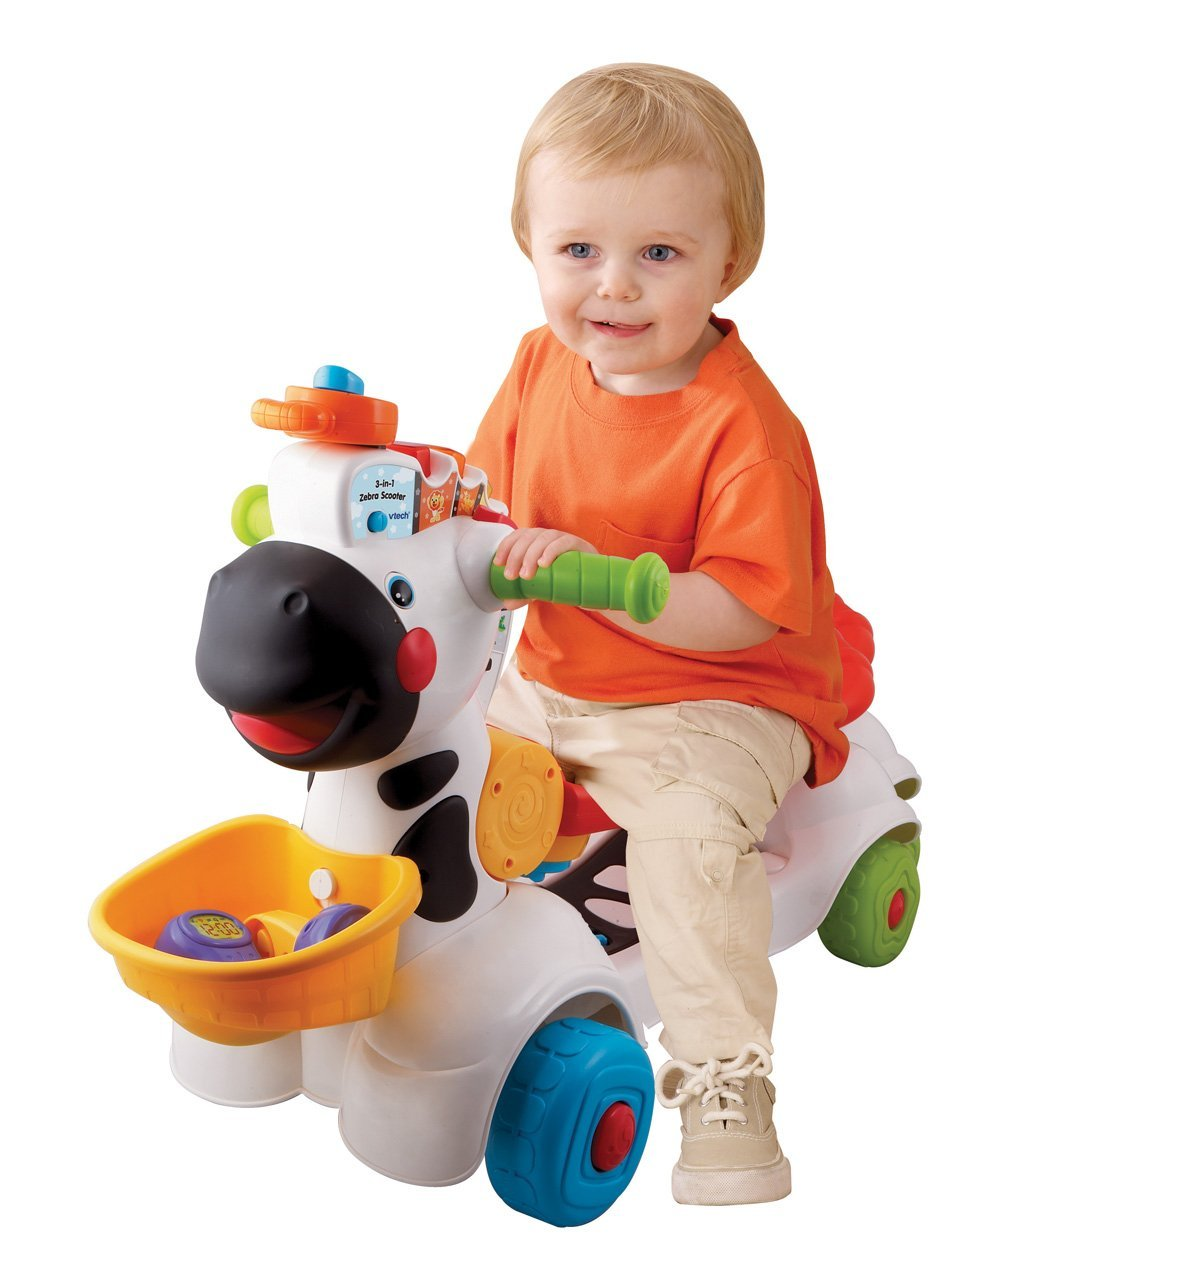 Toys For 1 Year Old : Best gifts ideas for one year old boys first christmas